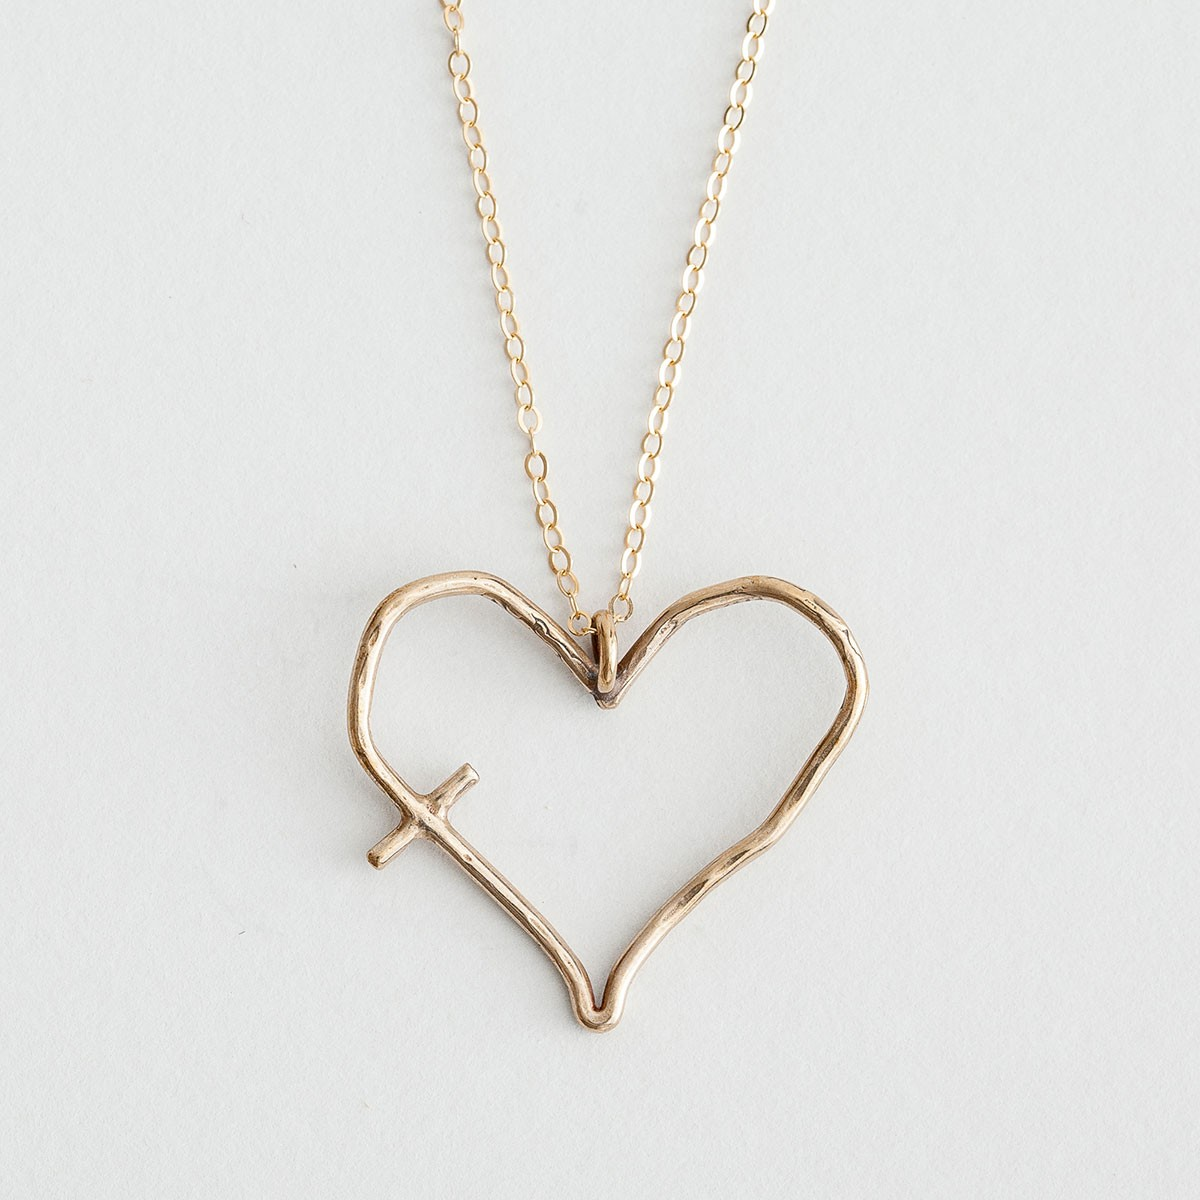 christian jewelry his word in my heart - yellow bronze pendant necklace tofvivk